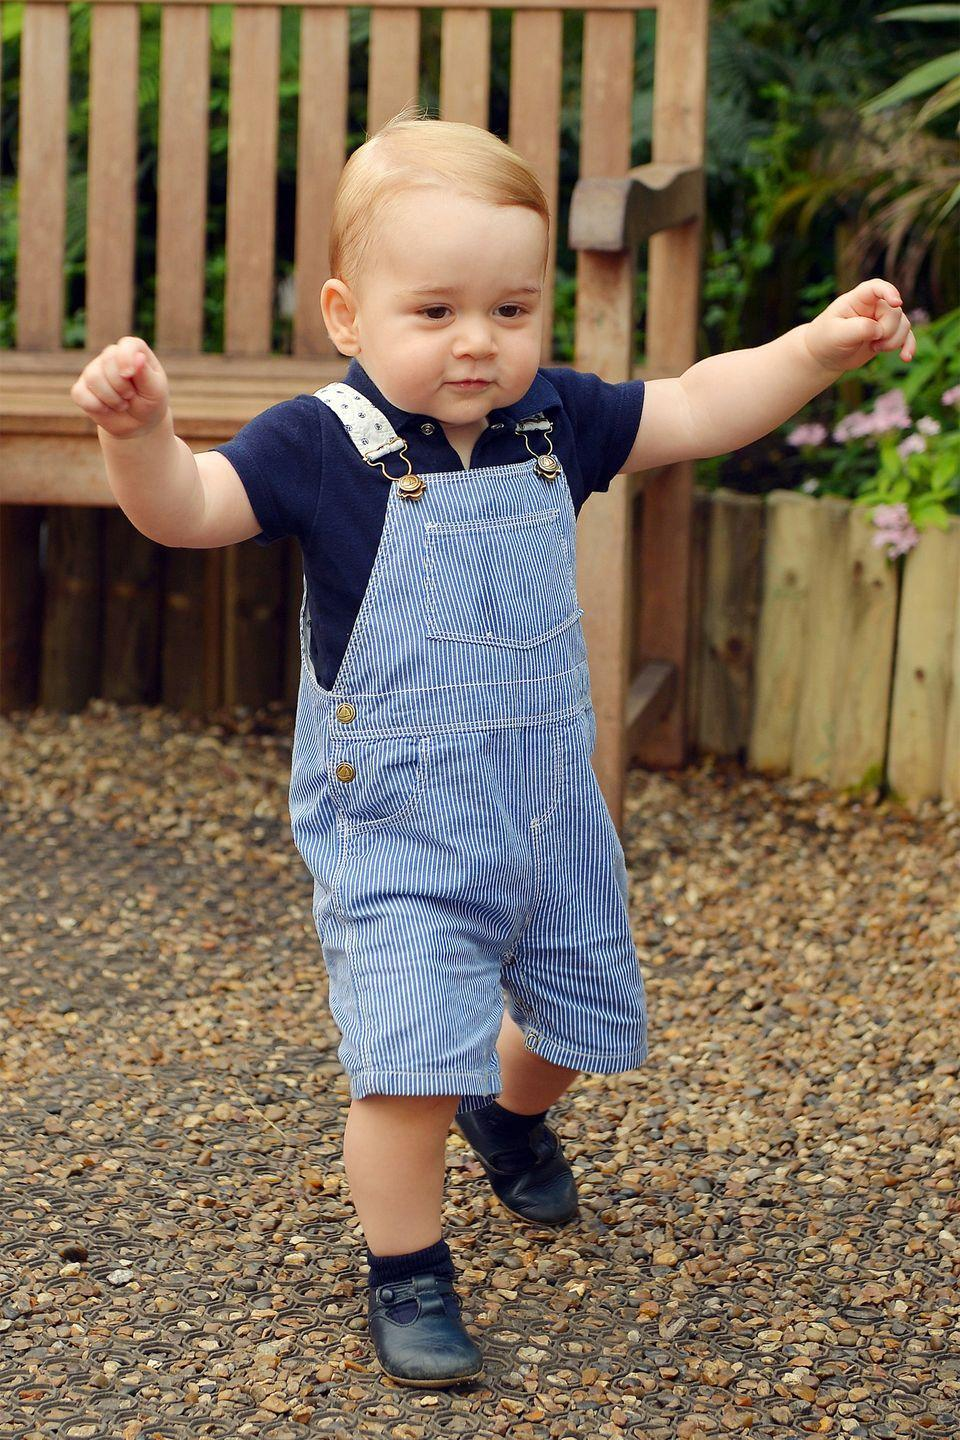 <p>Prince George visits the Sensational Butterflies exhibition at the Natural History Museum in London for his 1st birthday.</p>